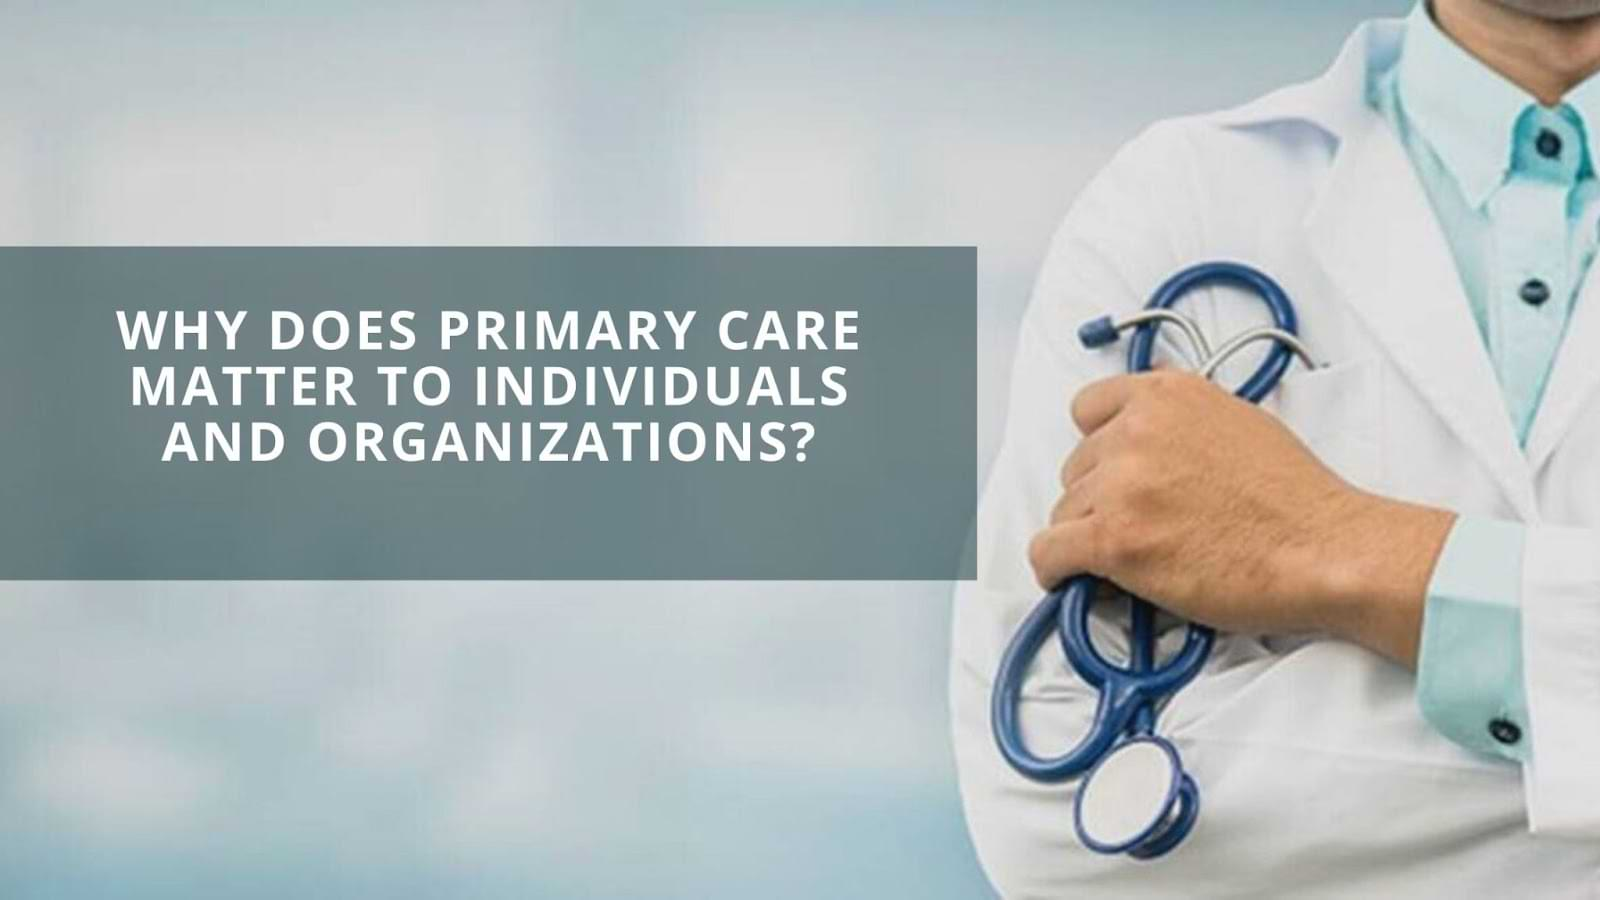 Why Does Primary Care Matter to Individuals and Organizations?